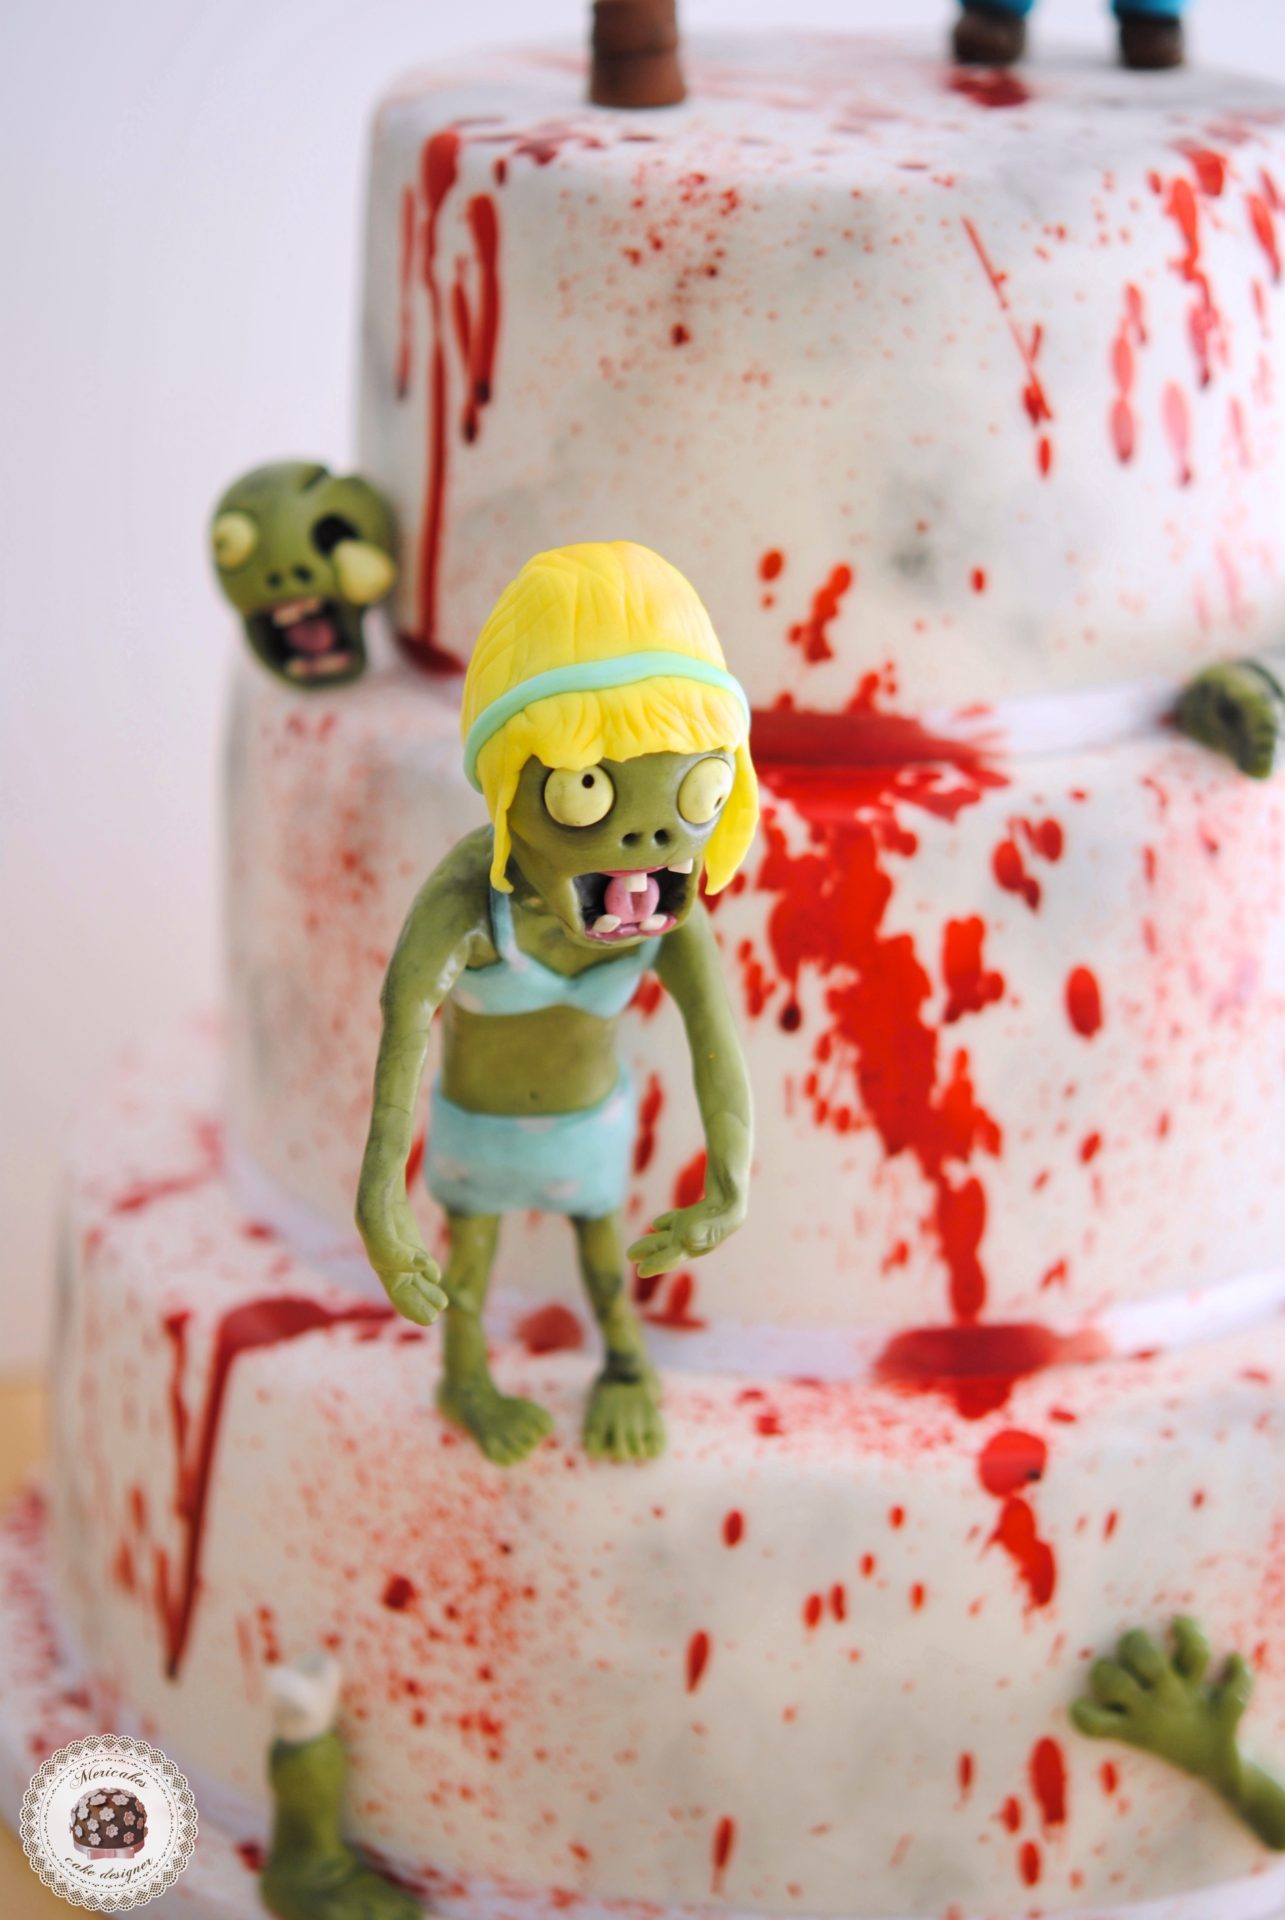 plants-vs-zombies-zombie-zombie-cake-blood-cake-blood-dexter-mericakes-barcelona-chocolate-1